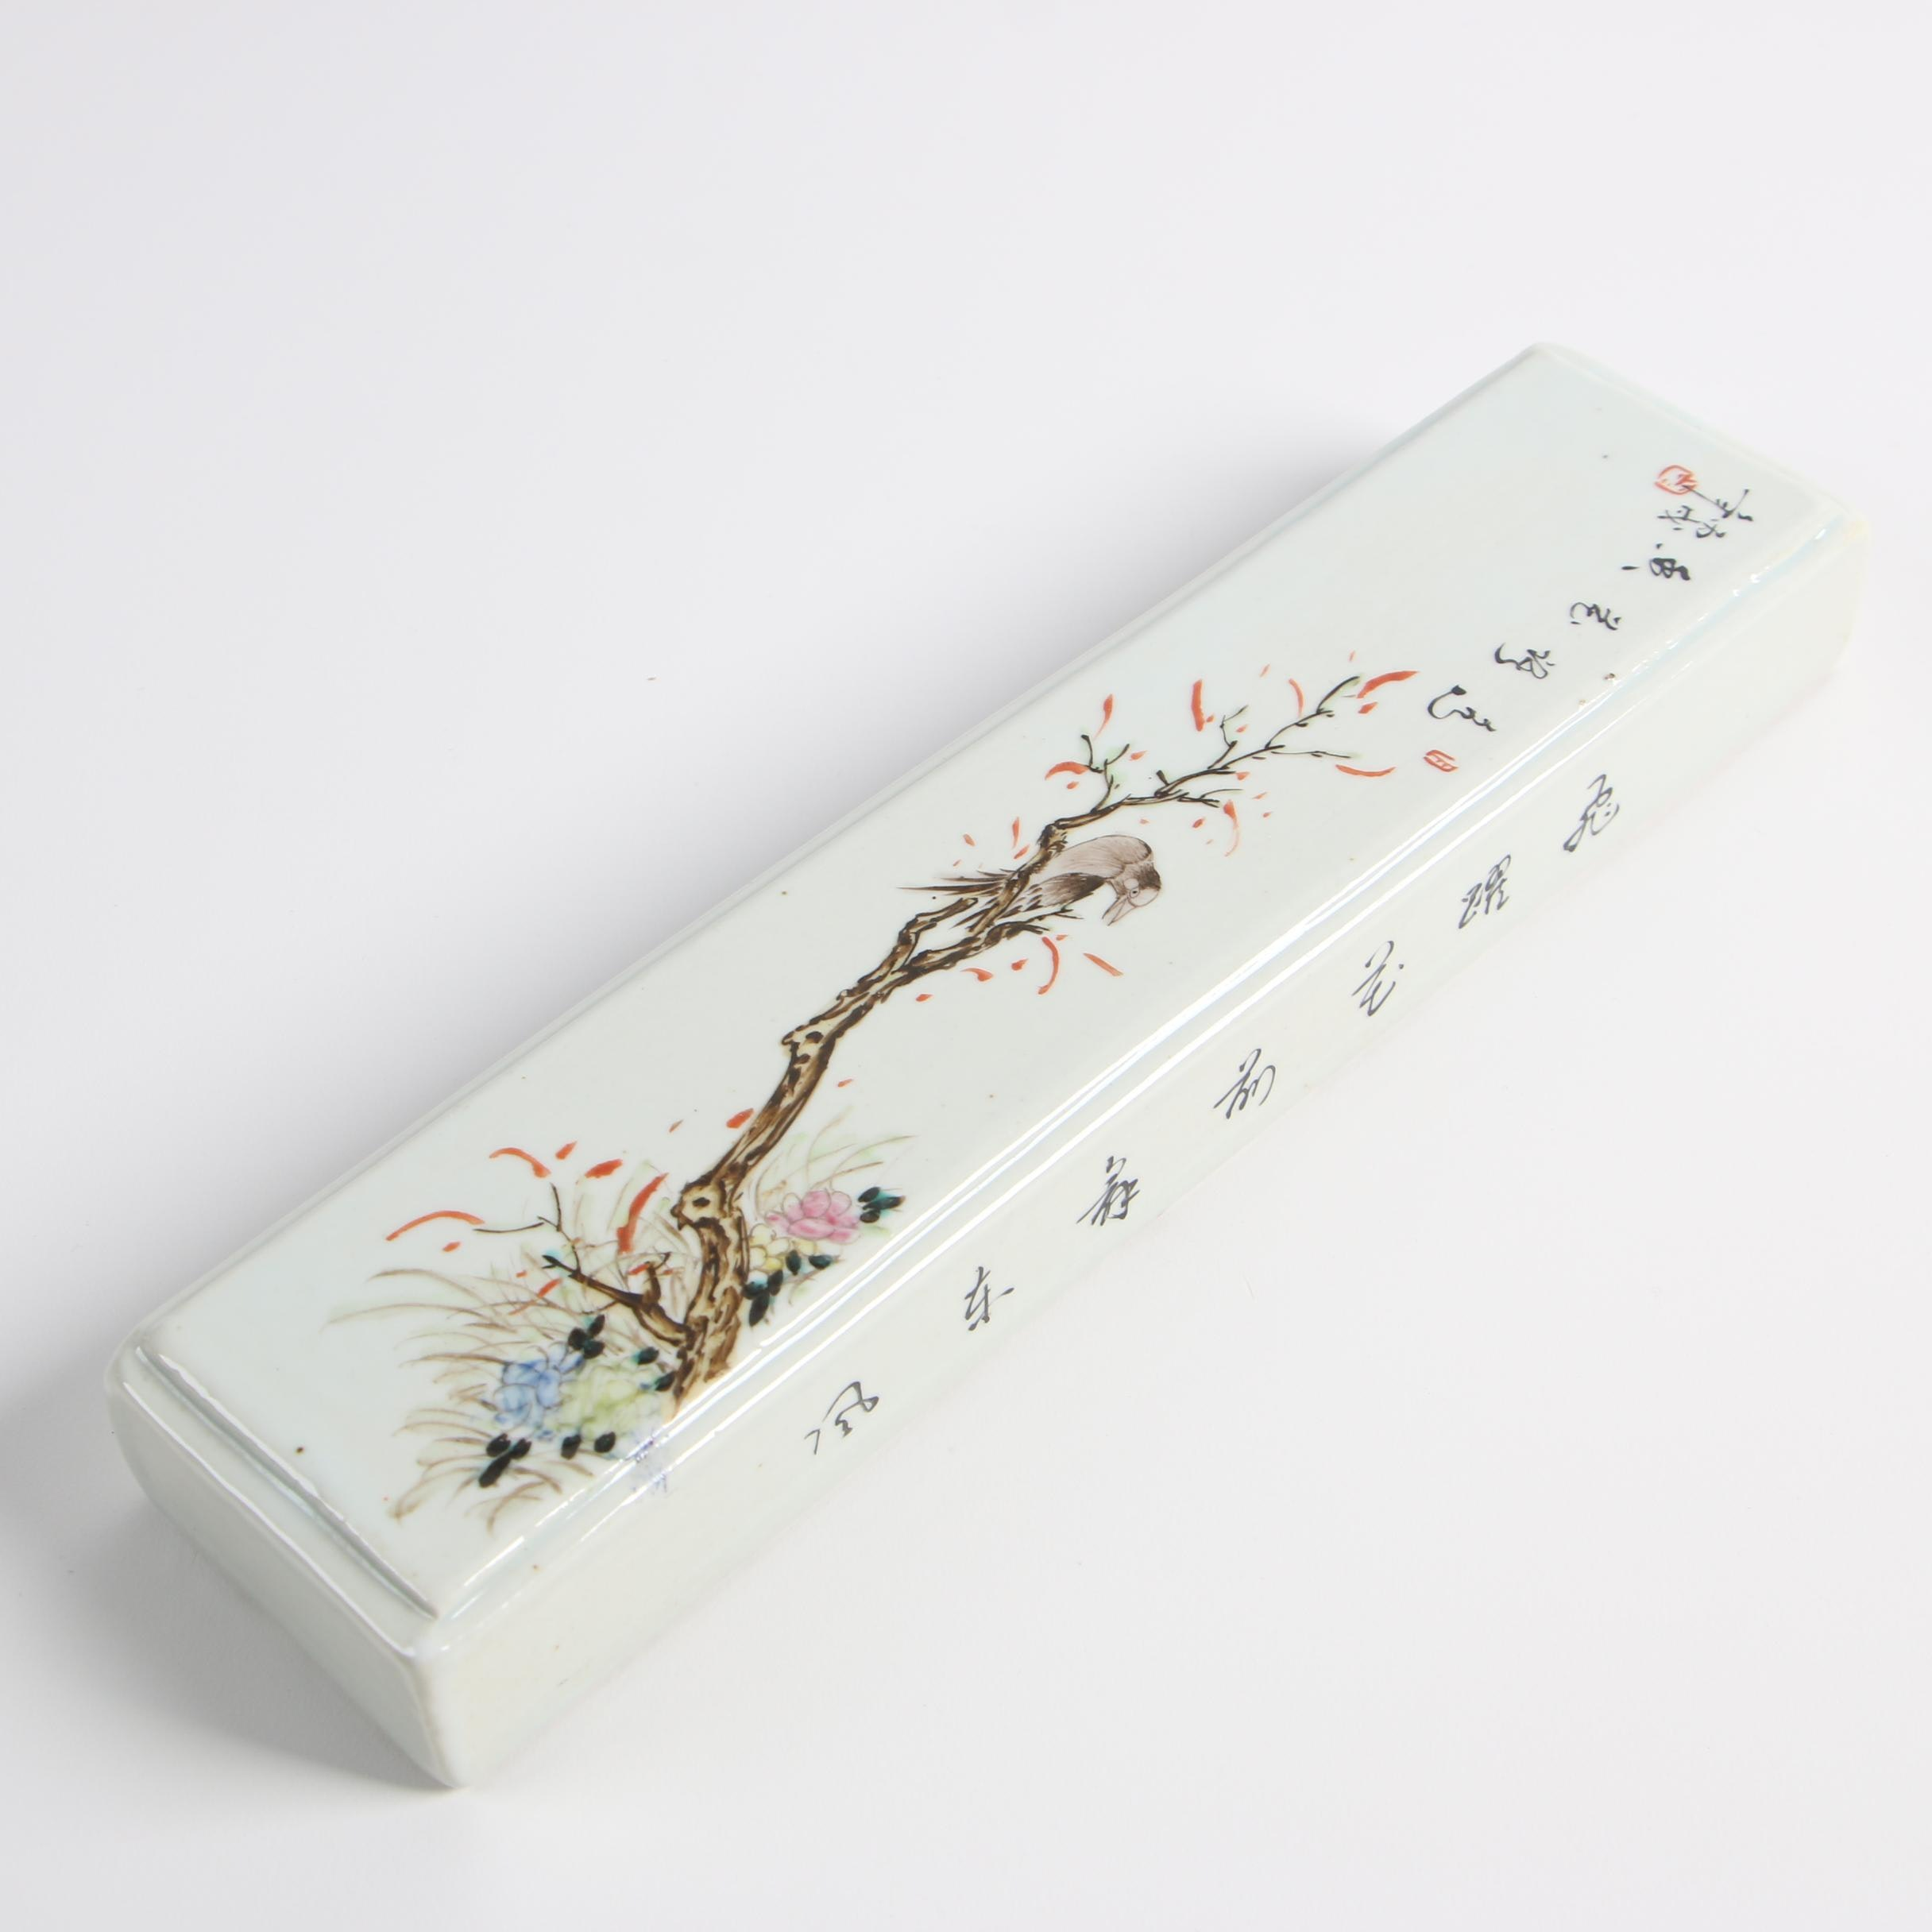 Japanese Porcelain Scholar's Scroll Paperweight, Mid to Late 19th Century